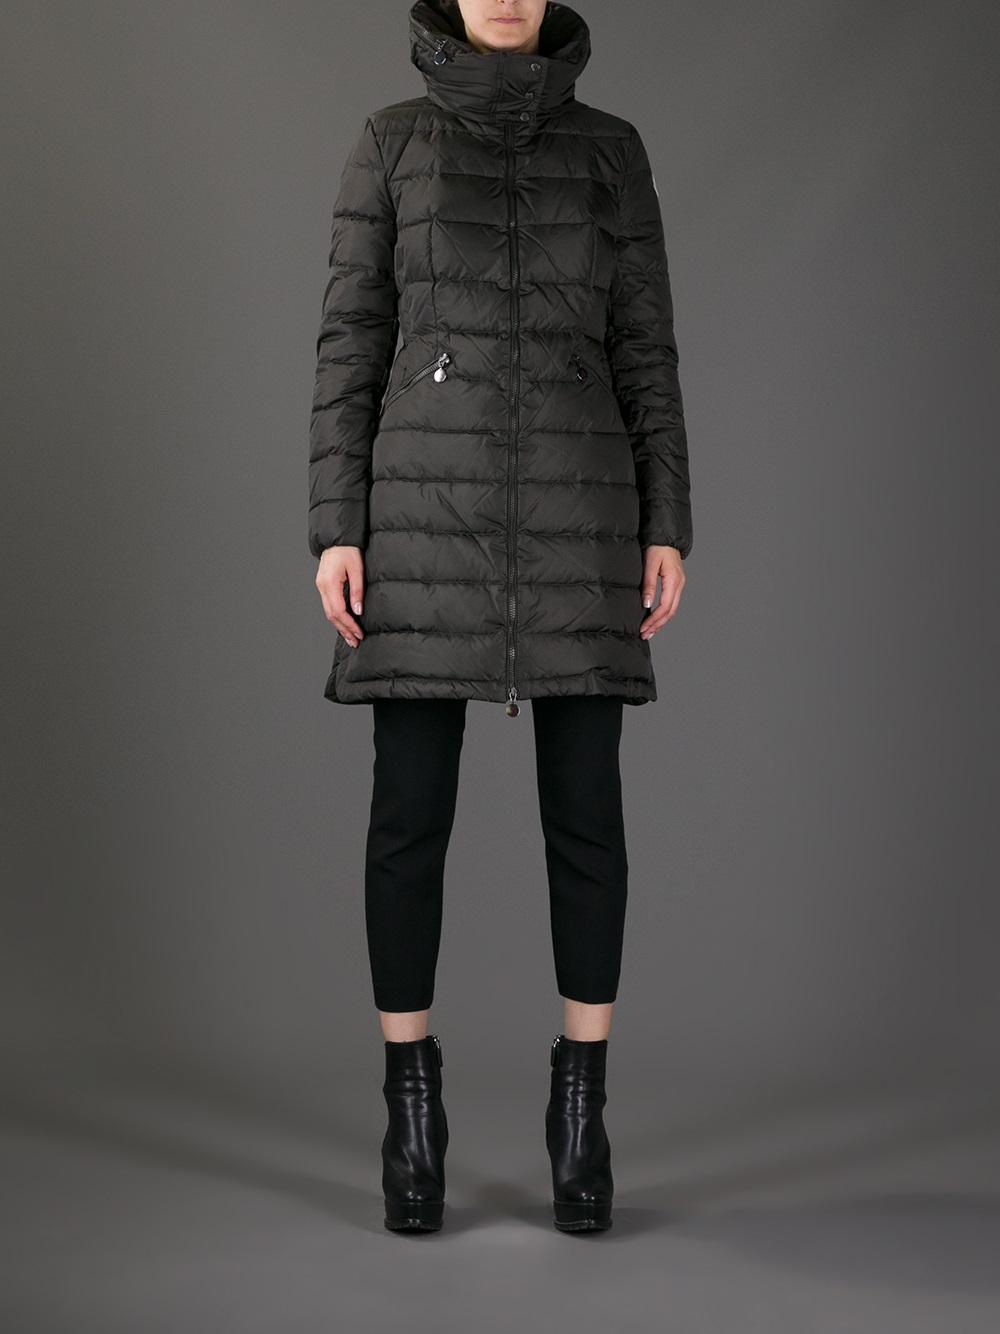 Moncler Padded Coat in Black | Lyst